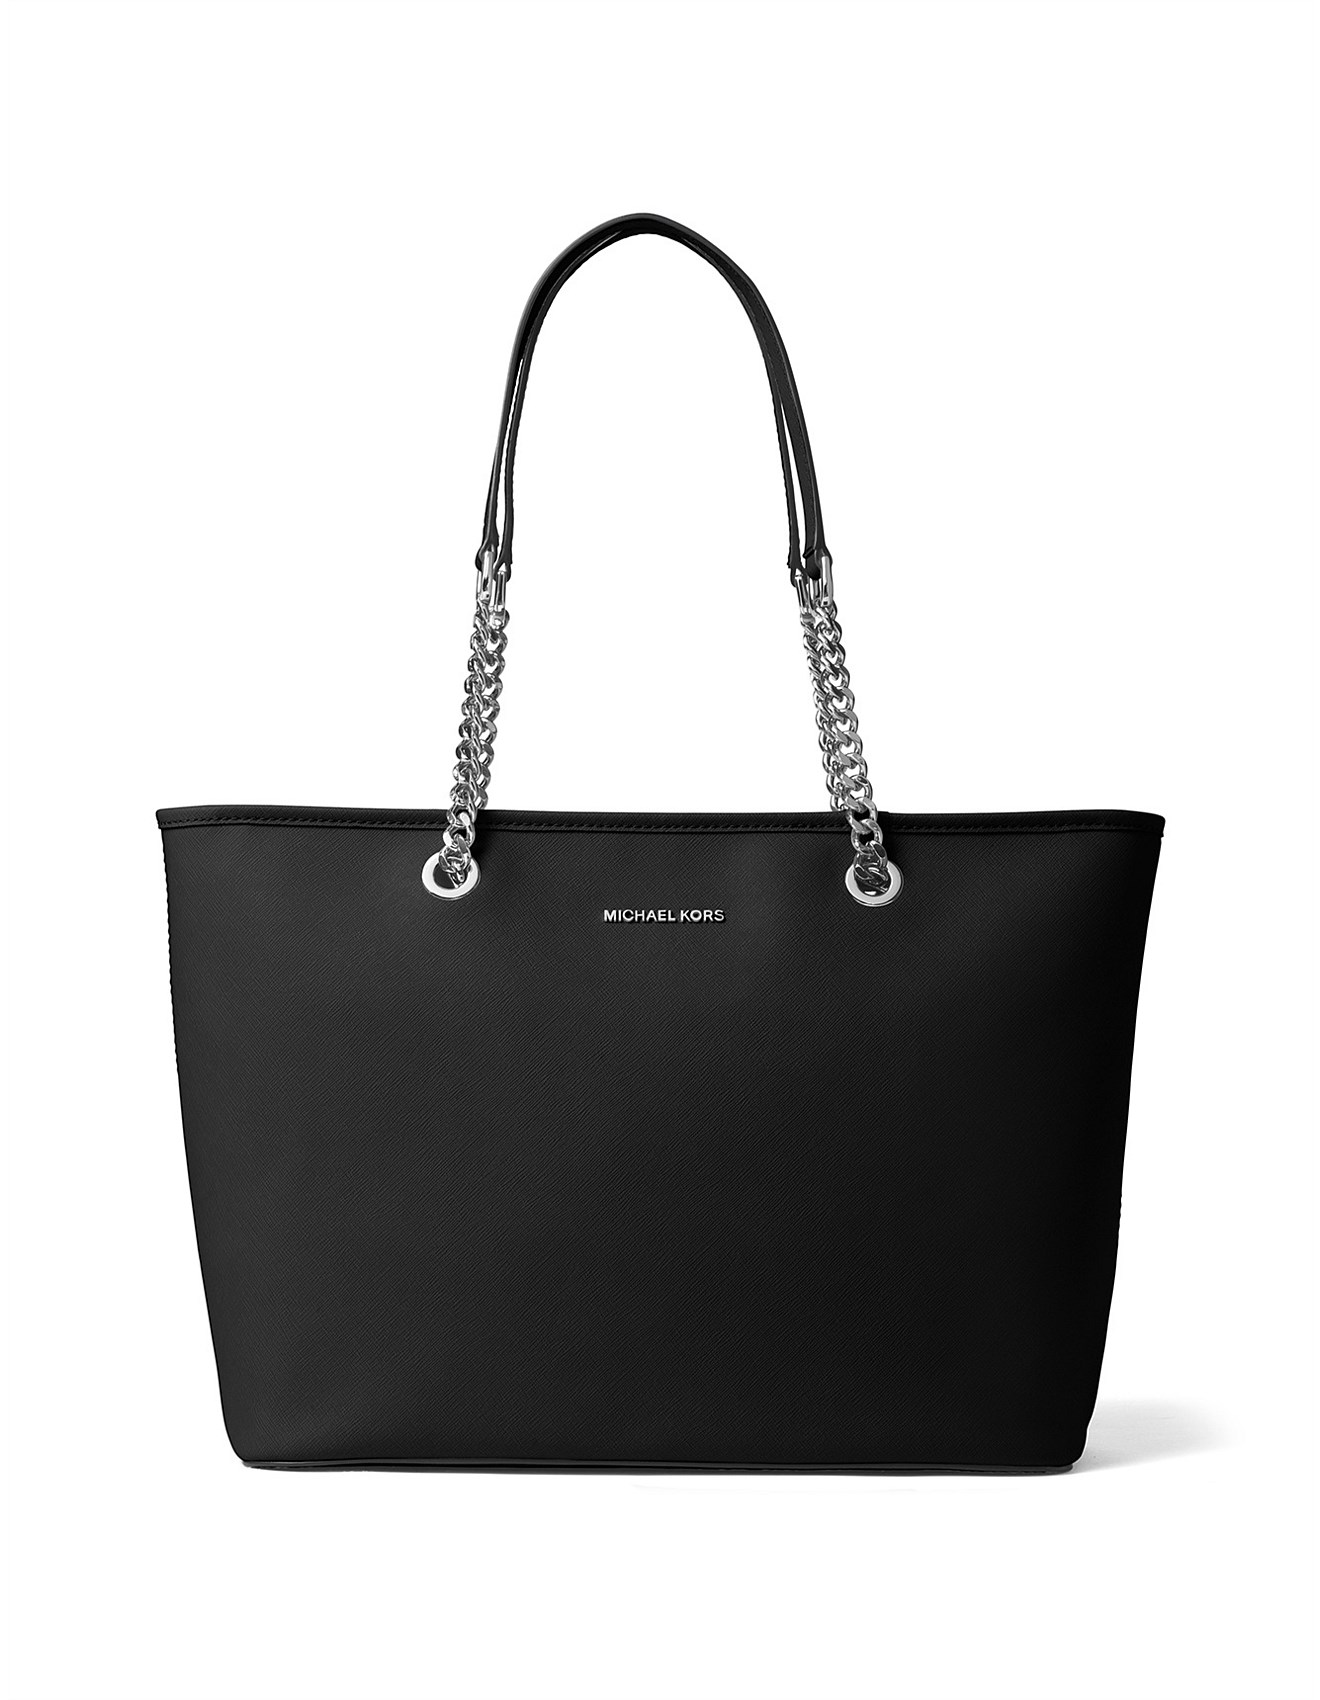 b5df395508 Jet Set Travel Medium Saffiano Top-Zip Tote